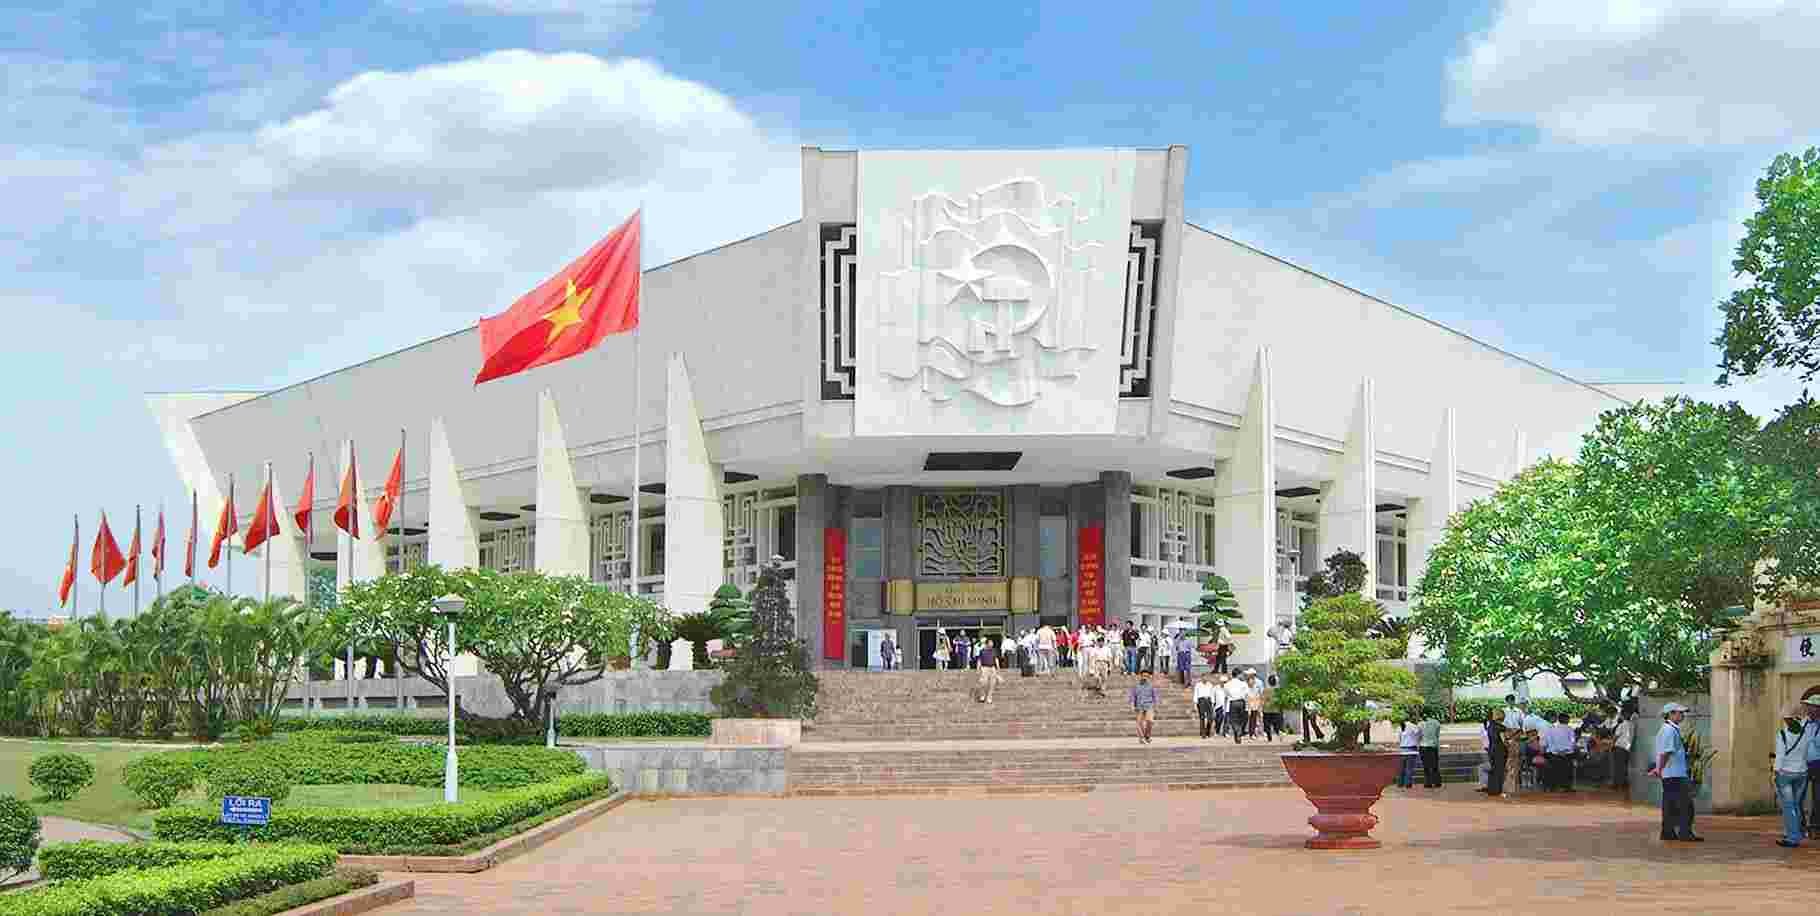 Why should you visit Ho Chi Minh Museum in Hanoi?